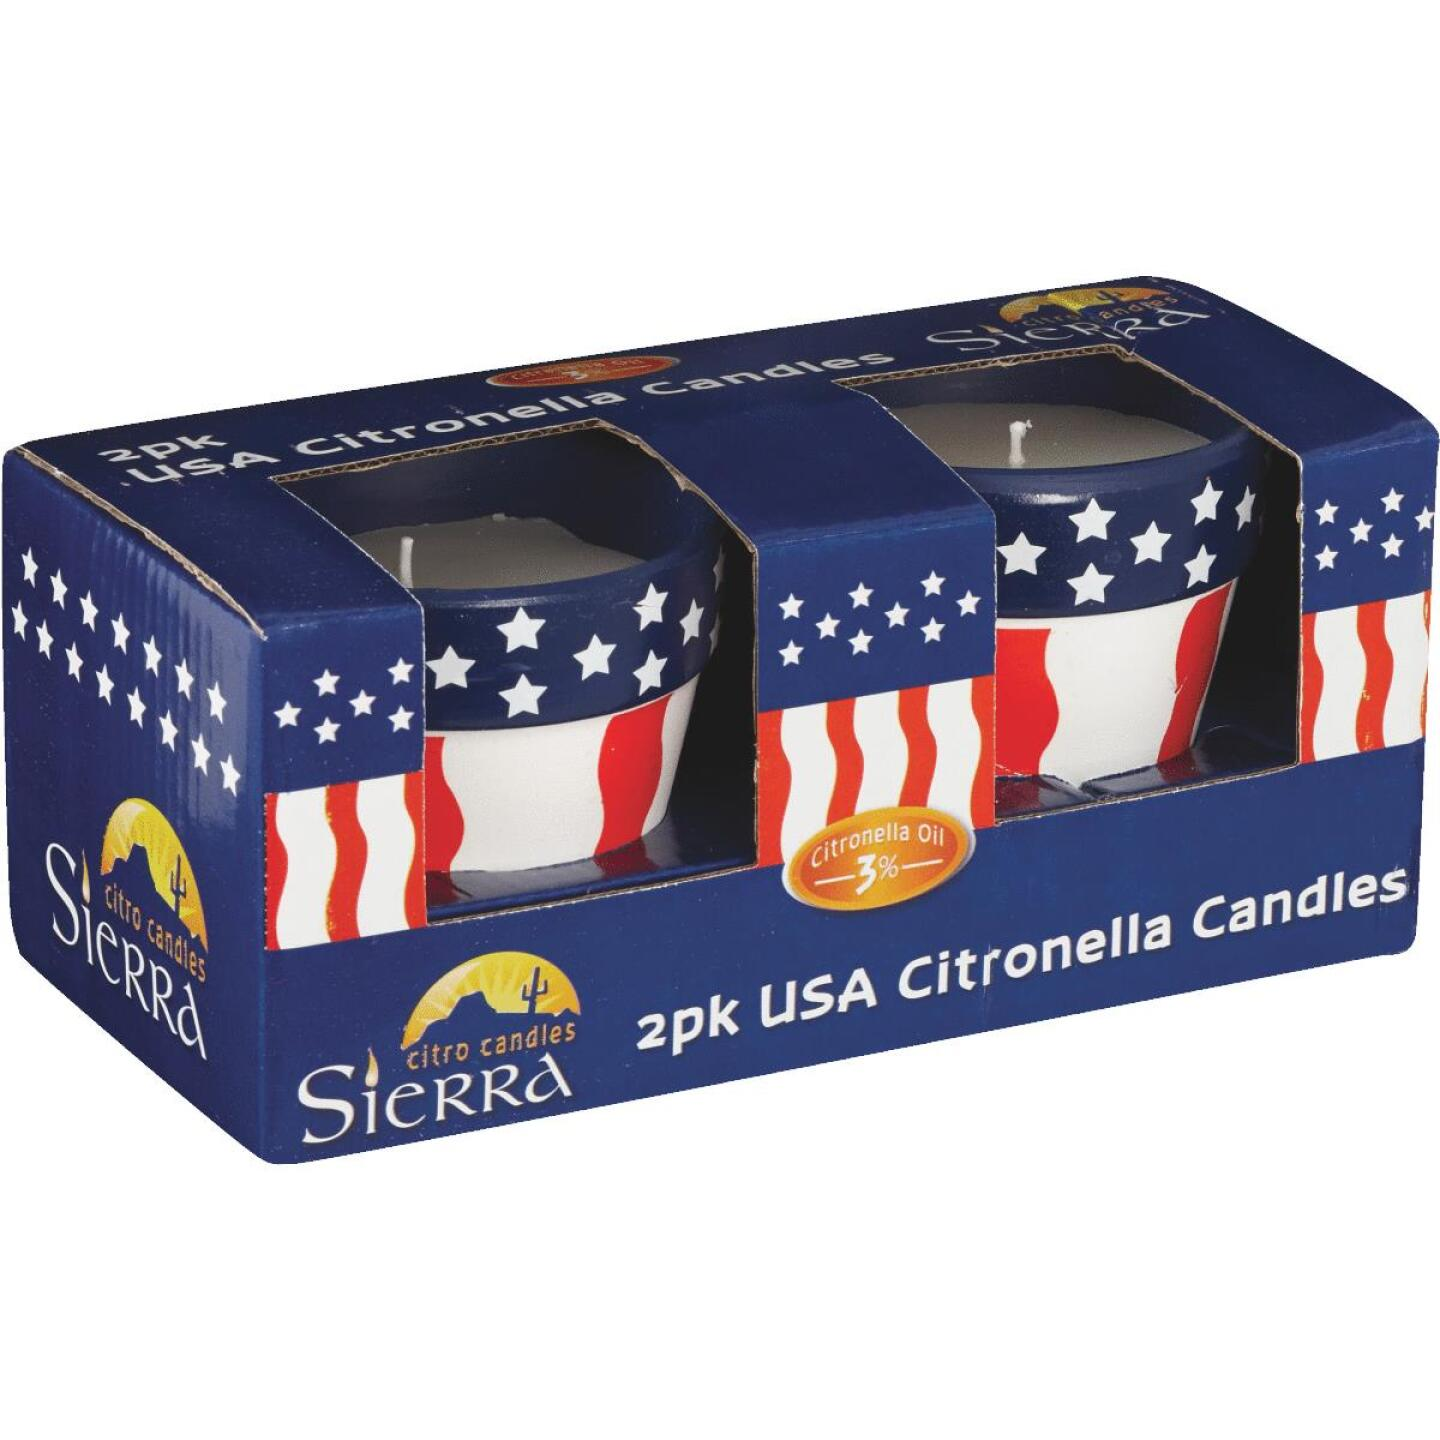 Sierra 3.5 Oz. 1-Wick USA Citronella Candle (2-Pack) Image 3